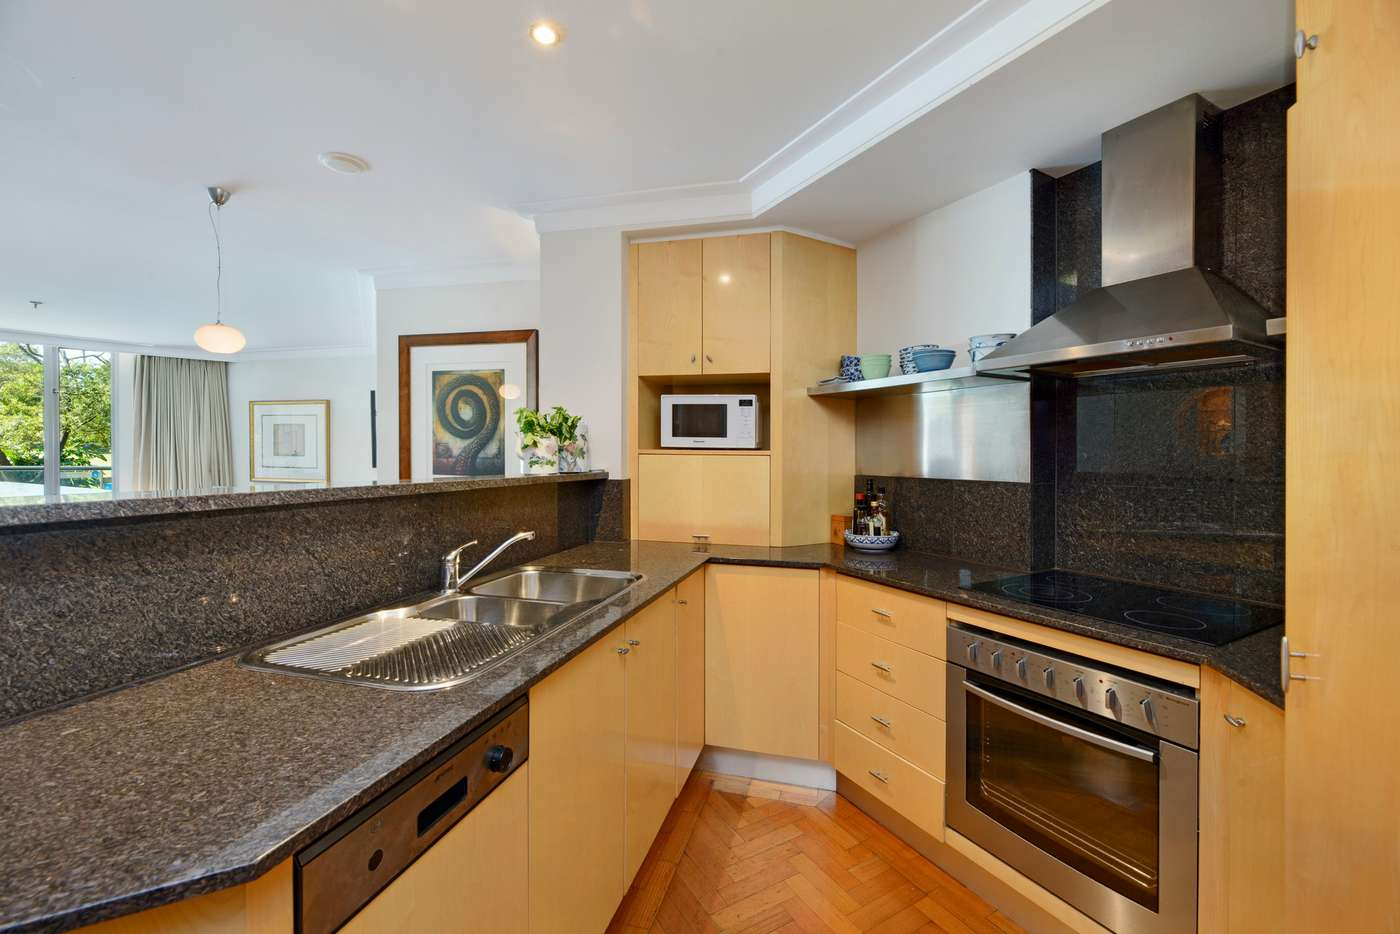 Fifth view of Homely apartment listing, 413/61 Macquarie Street, Sydney NSW 2000